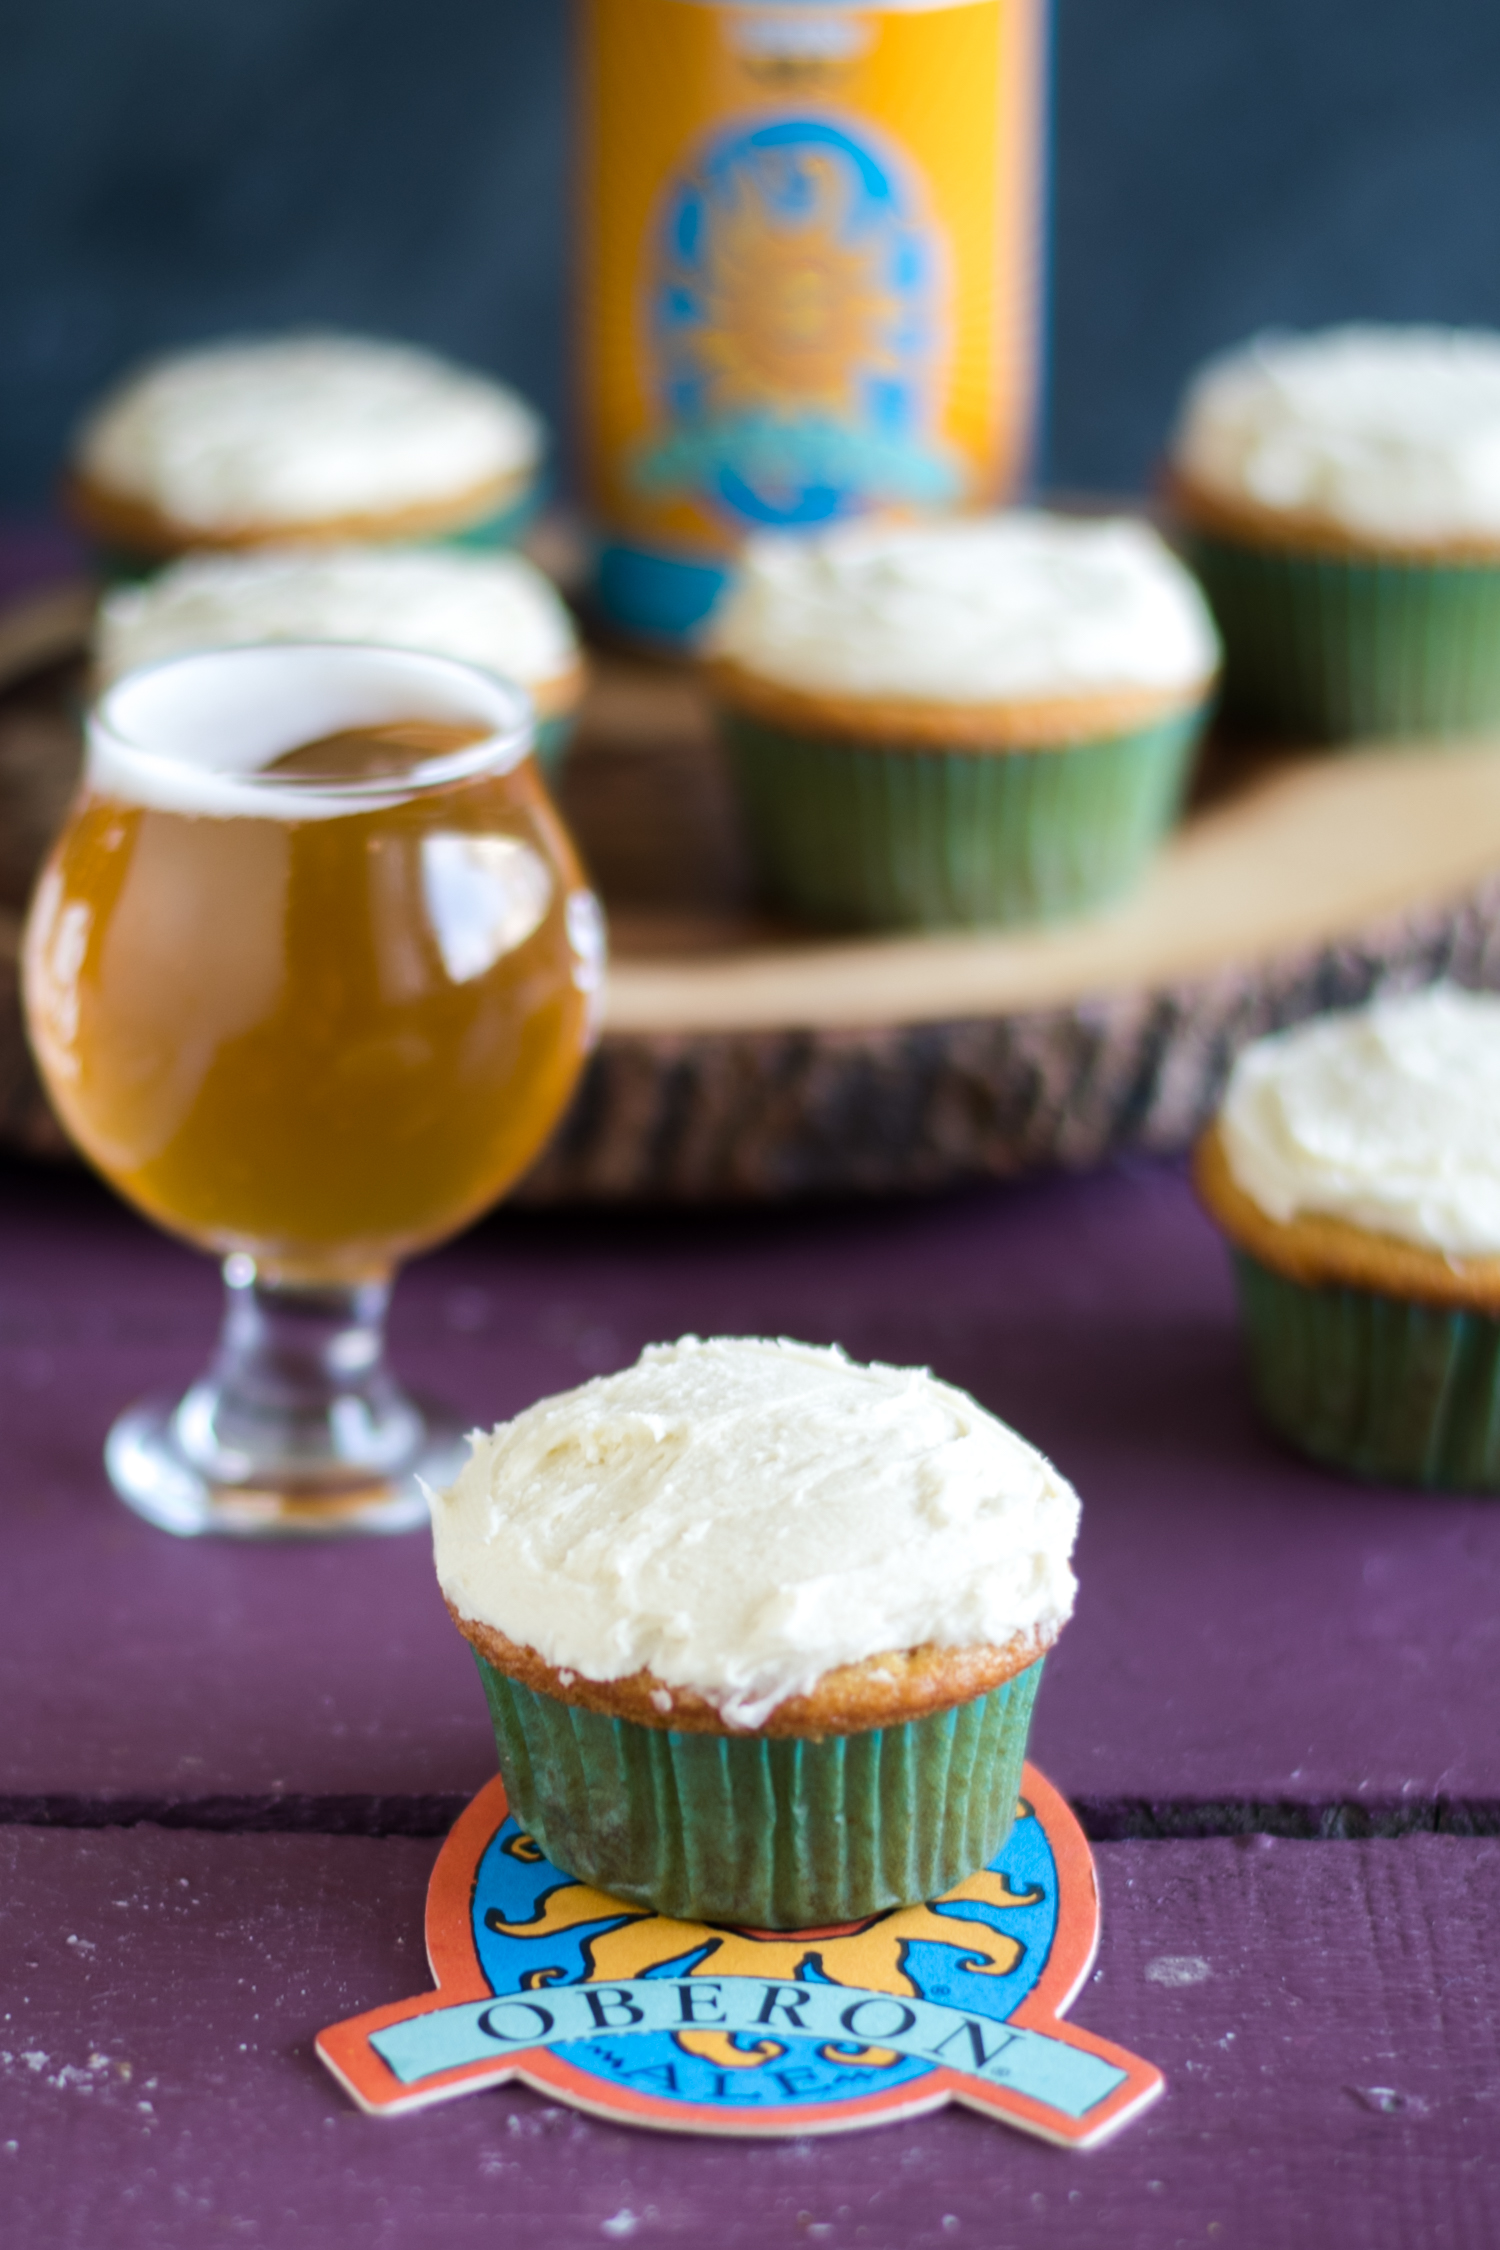 Cupcakes made with Bell's Oberon wheat ale. These cupcakes are light, tender and bursting with bright citrus flavor. #beer #dessert #cupcakes #bells #craftbeer #food